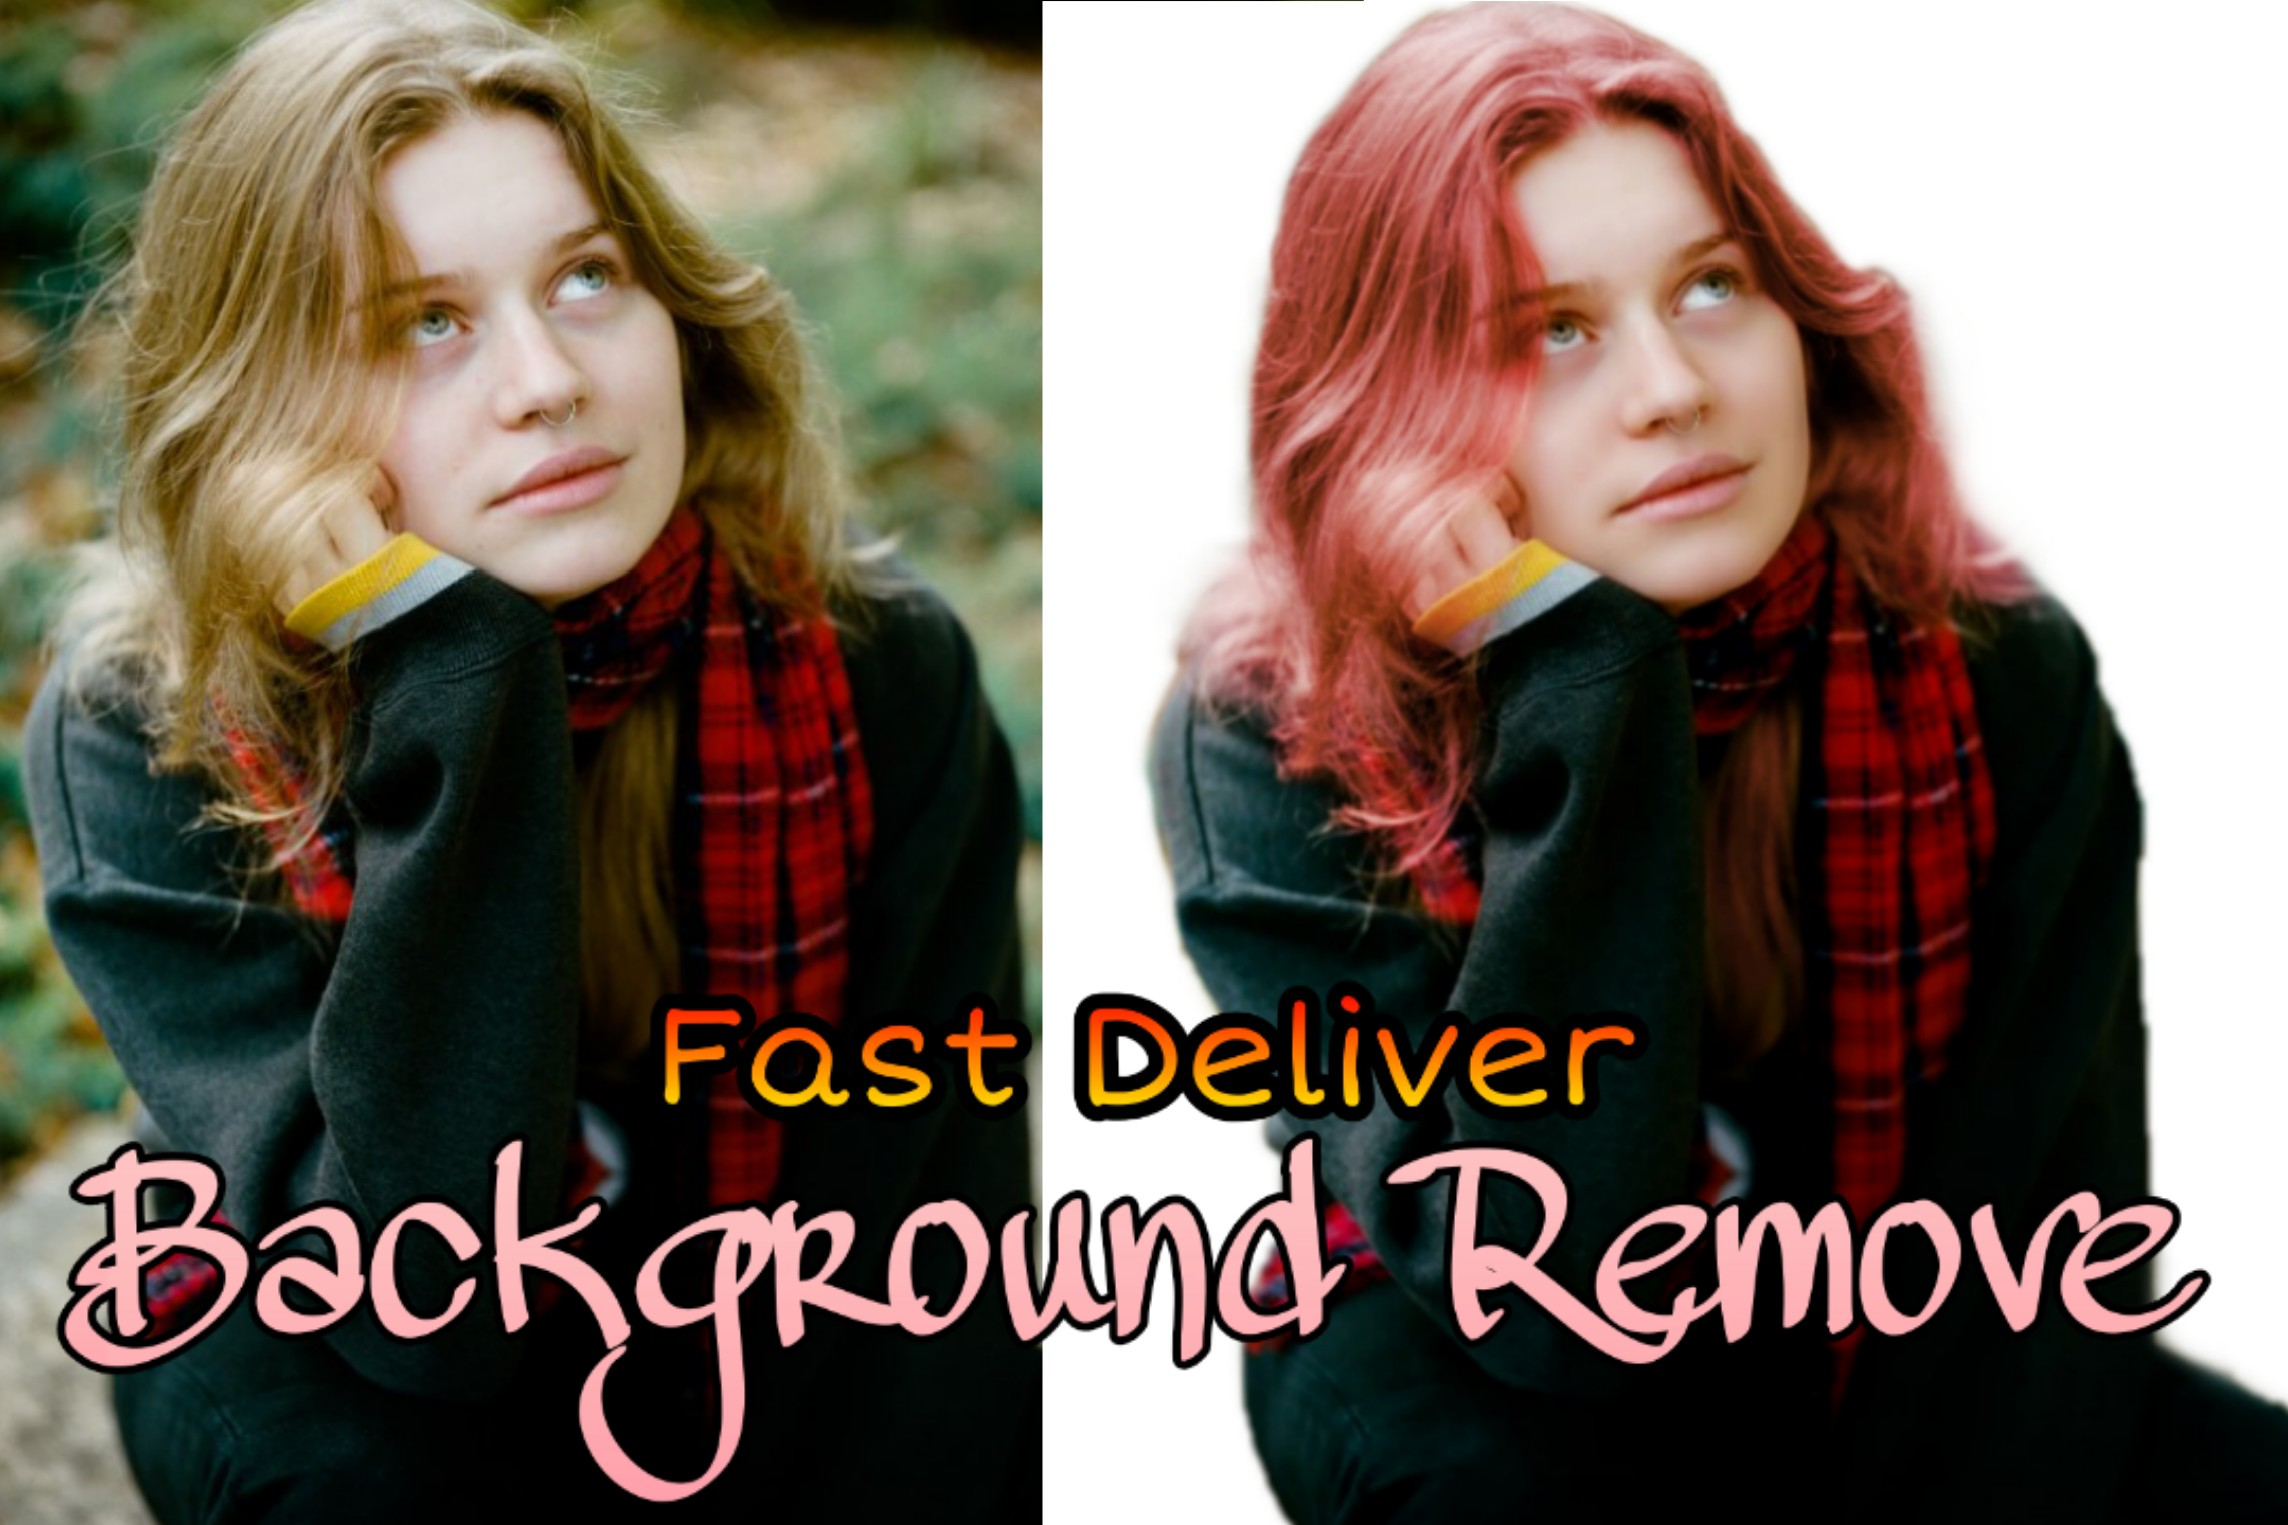 do photo edit and background remove fast 15 hours